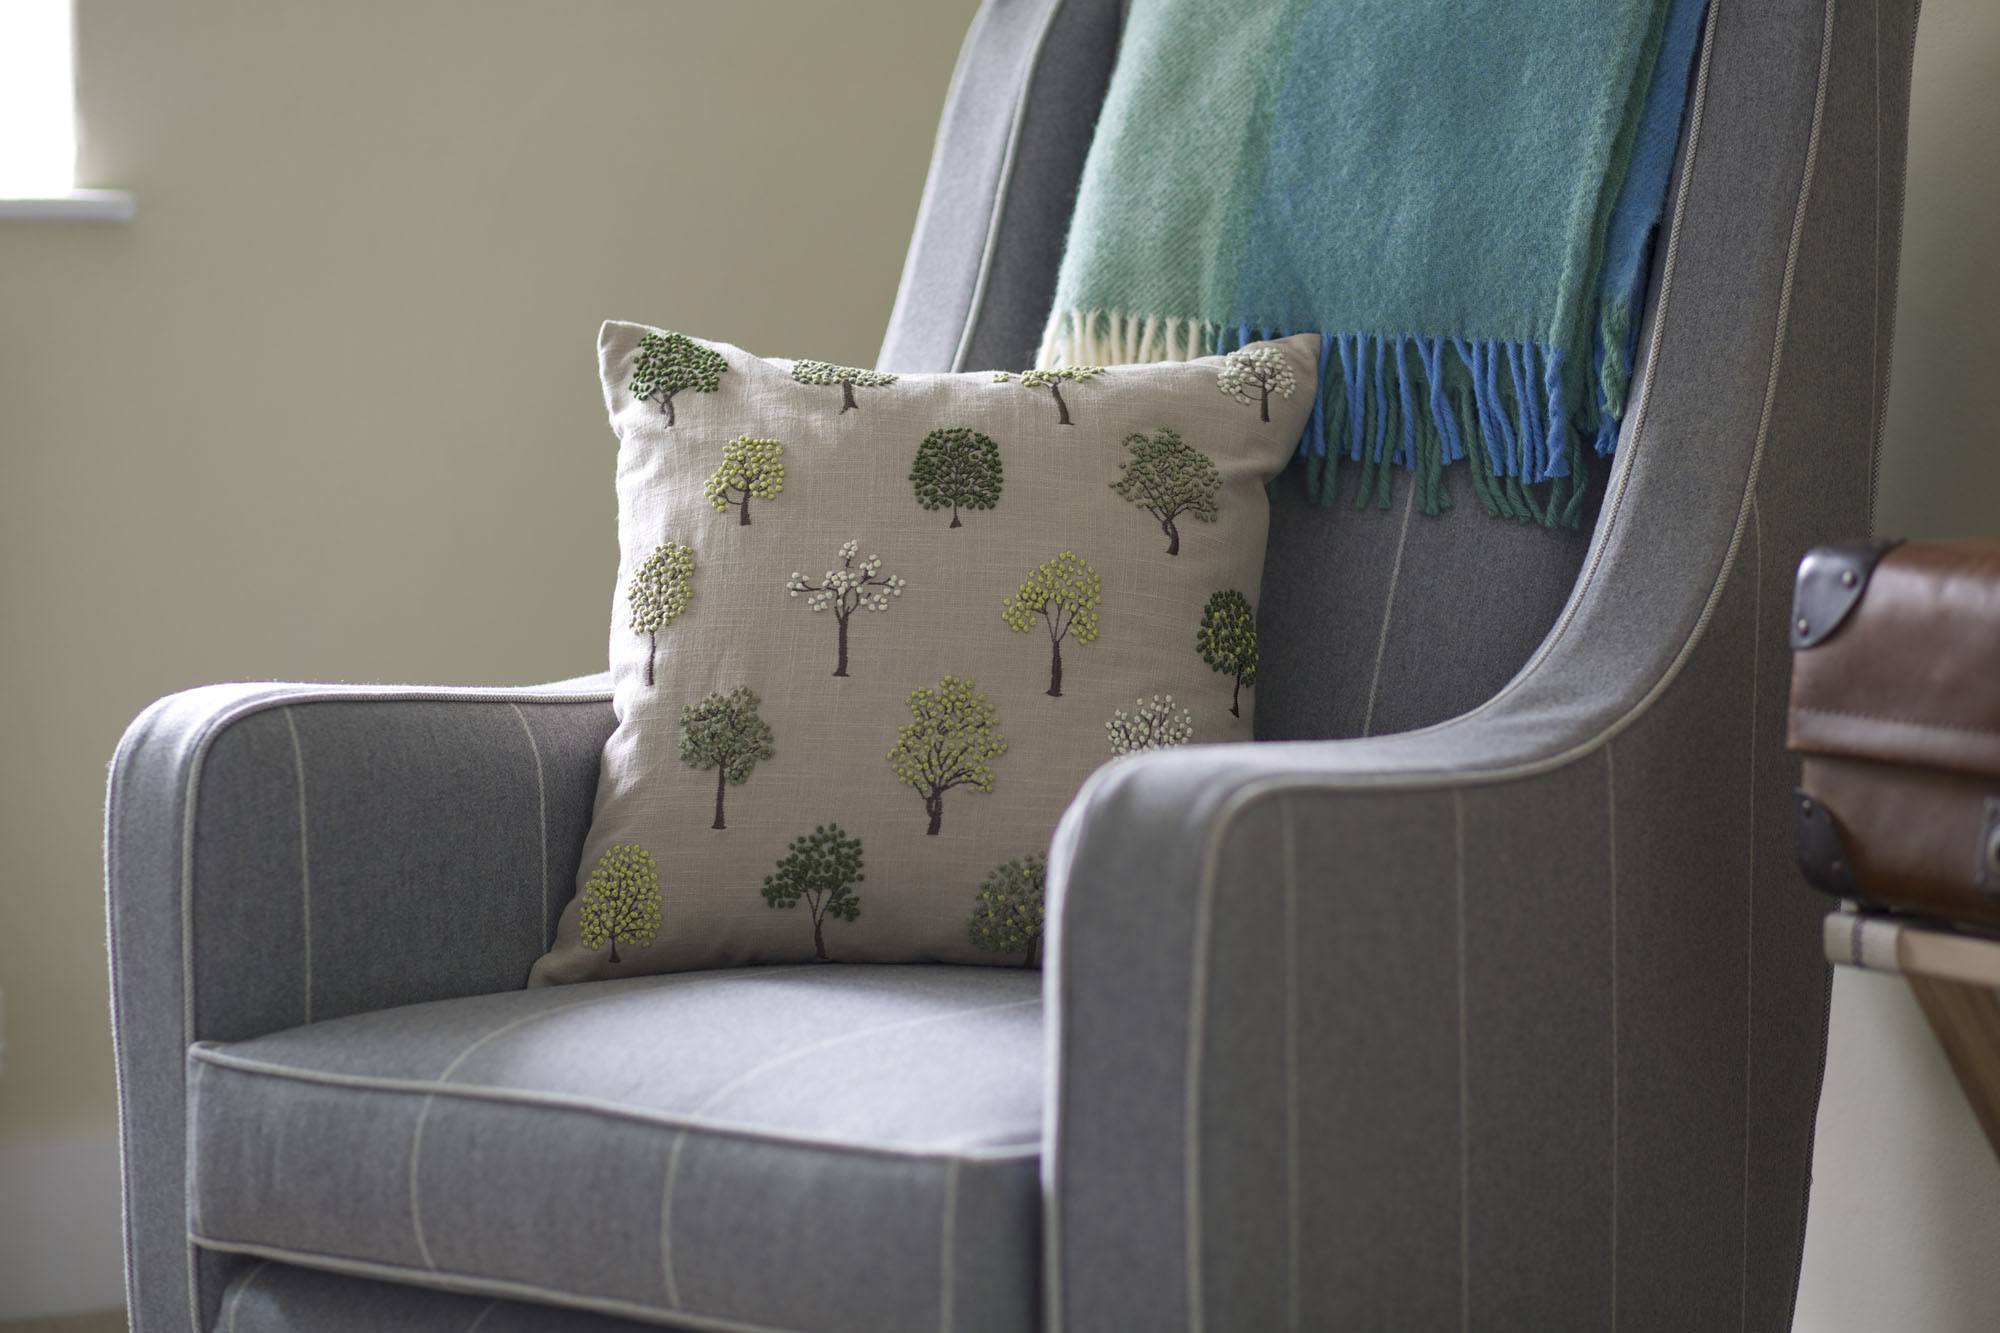 wingreen chair and tree cushion JKE_4272.jpg